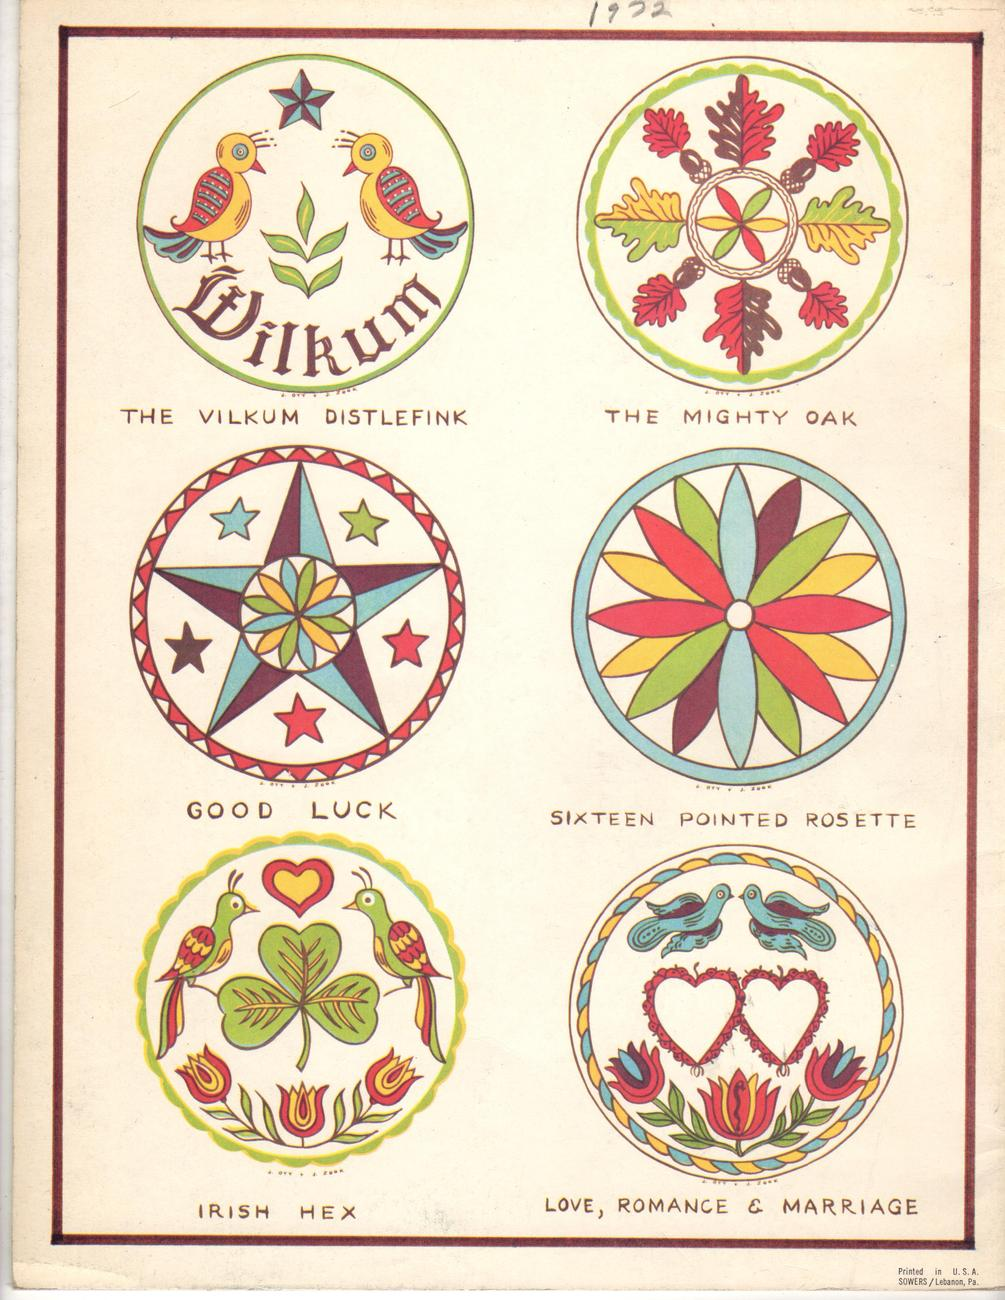 Tthe History and the Meaning of the Hex Symbols. by Jacob and Jane Zook and Hexo